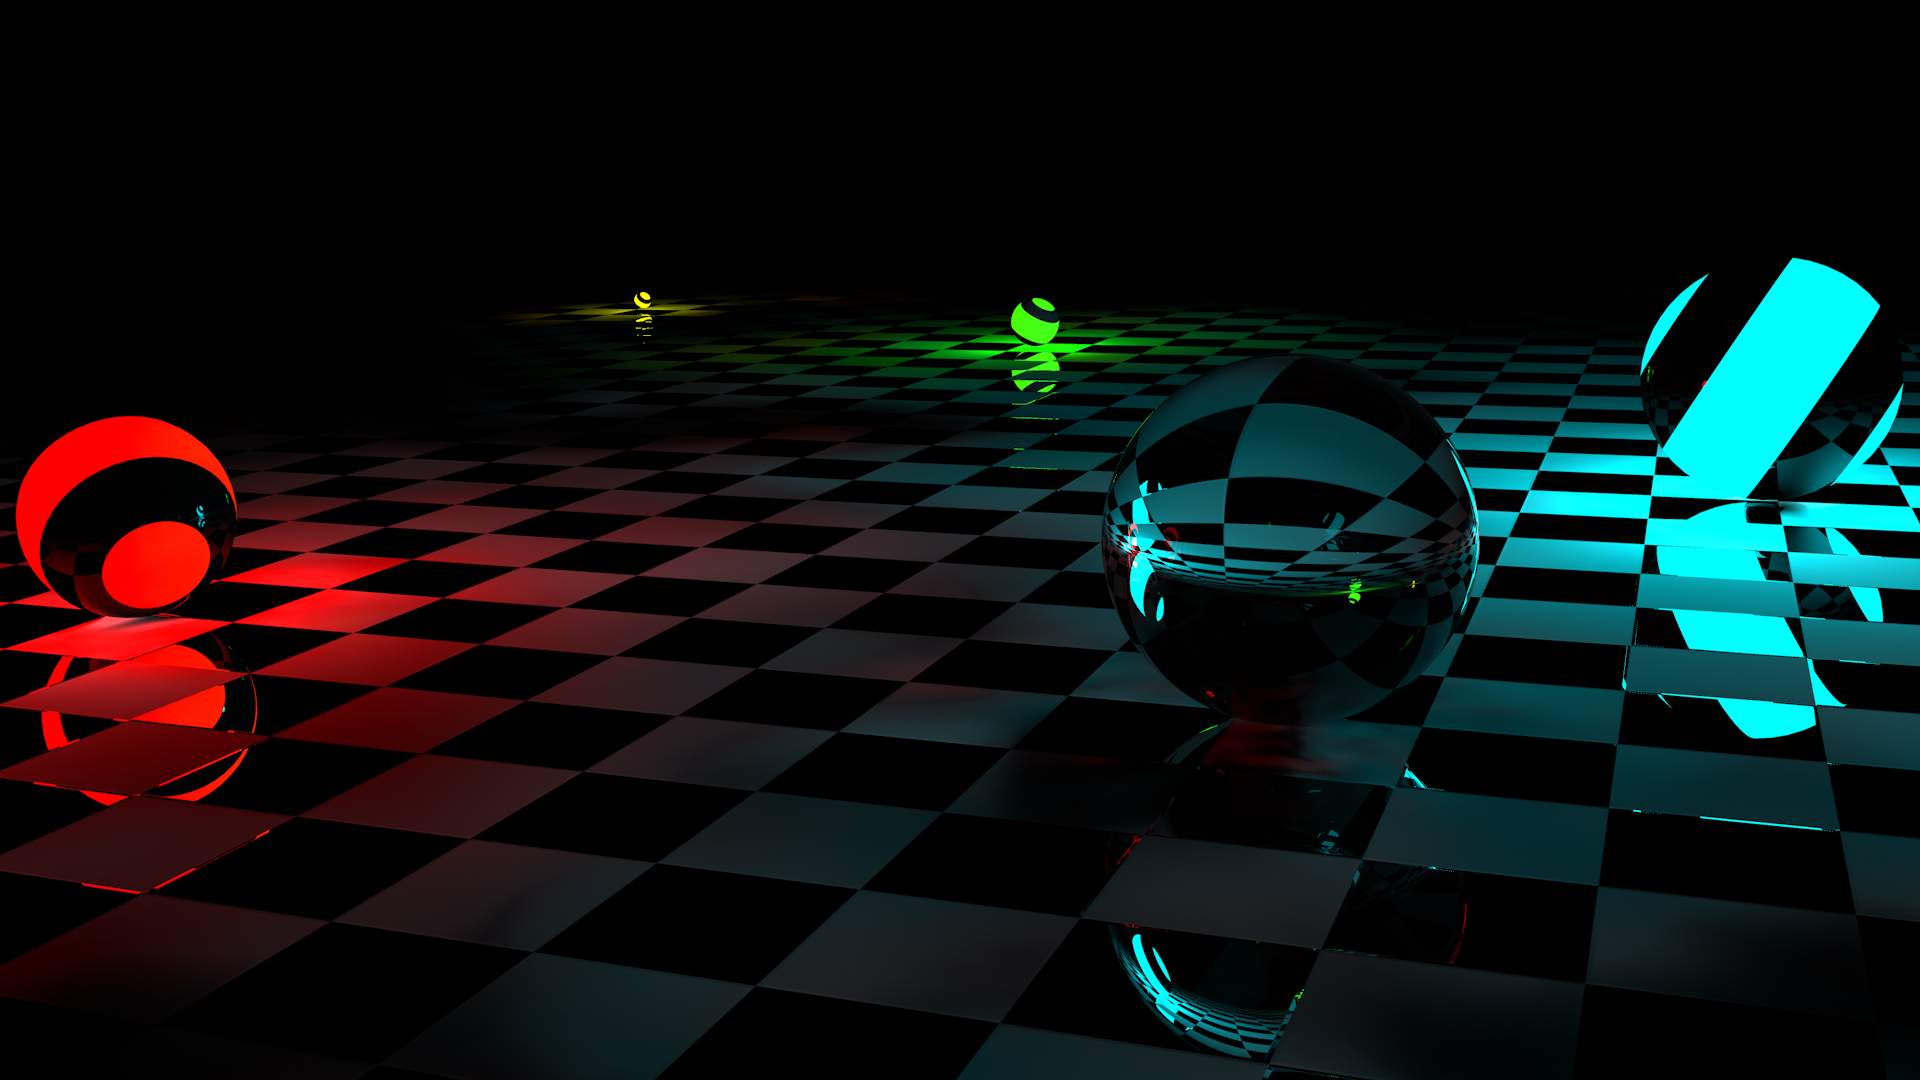 Illuminated balls on a chess board wallpaper 3d 4234937 illuminated balls on a chess board wallpaper 3d voltagebd Choice Image